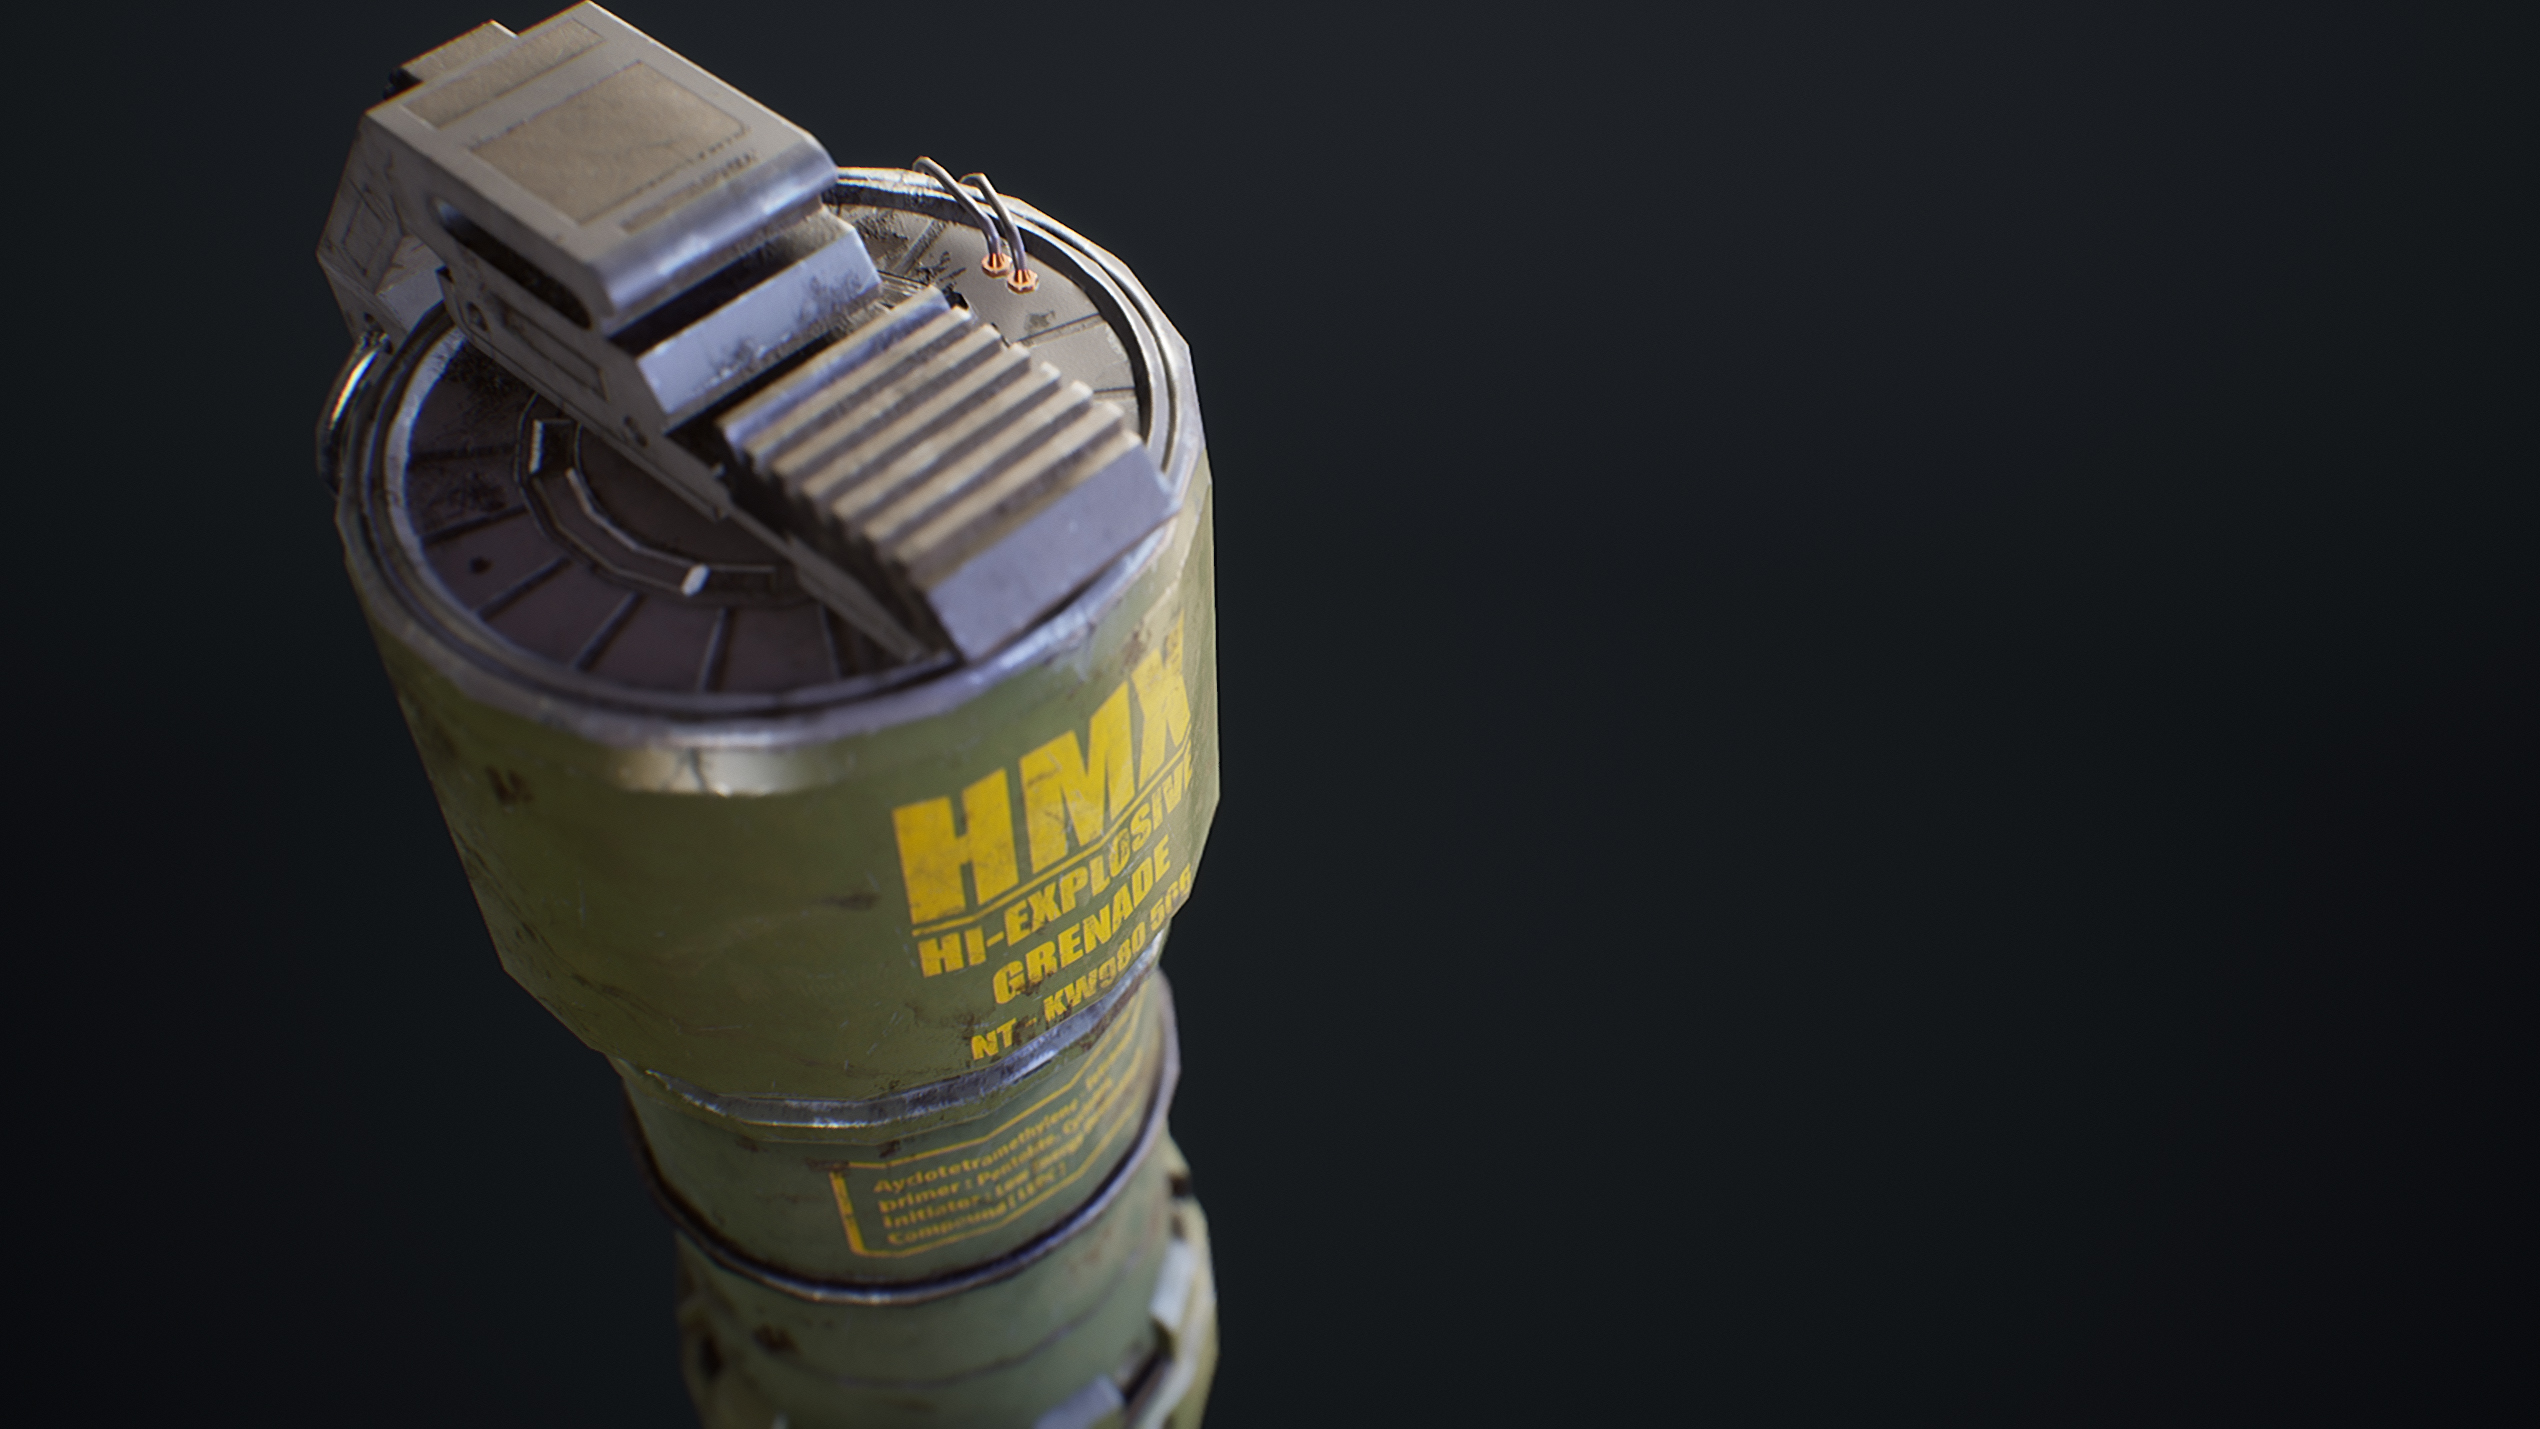 UE4 screenshot close up front view detailed shot of the sci-fi grenade